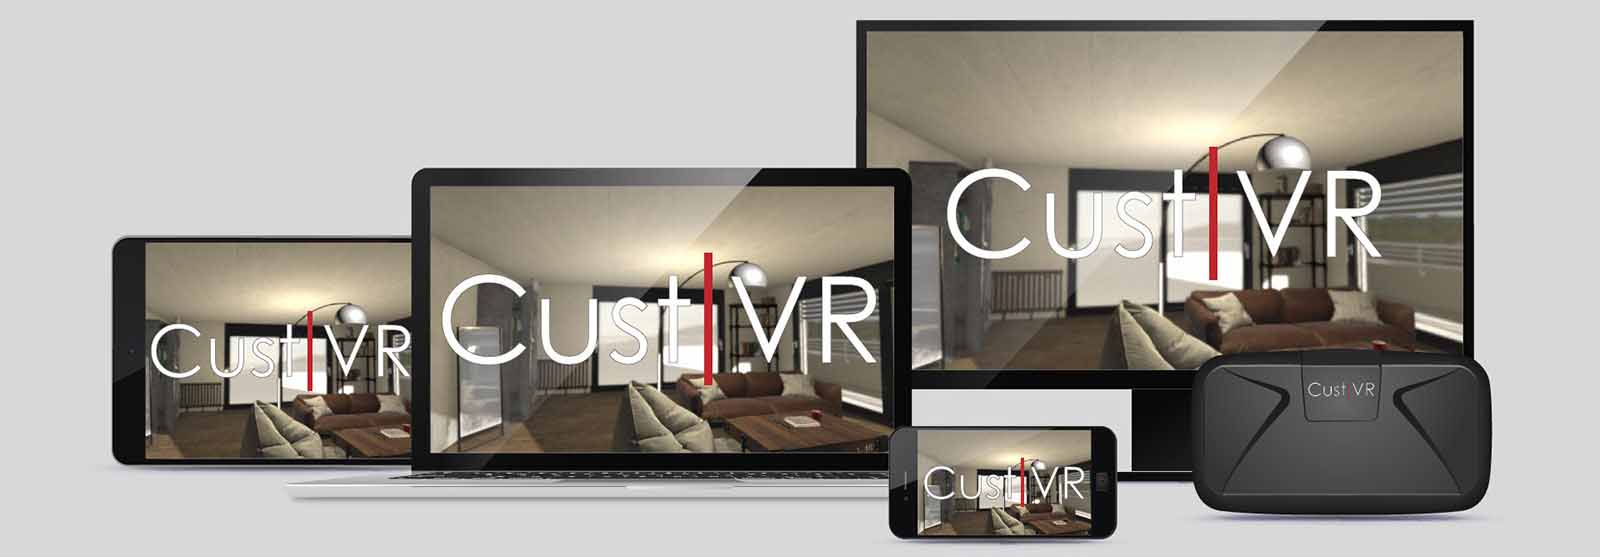 Application CustVR accessible par mobile, tablette, Web et lunettes VR